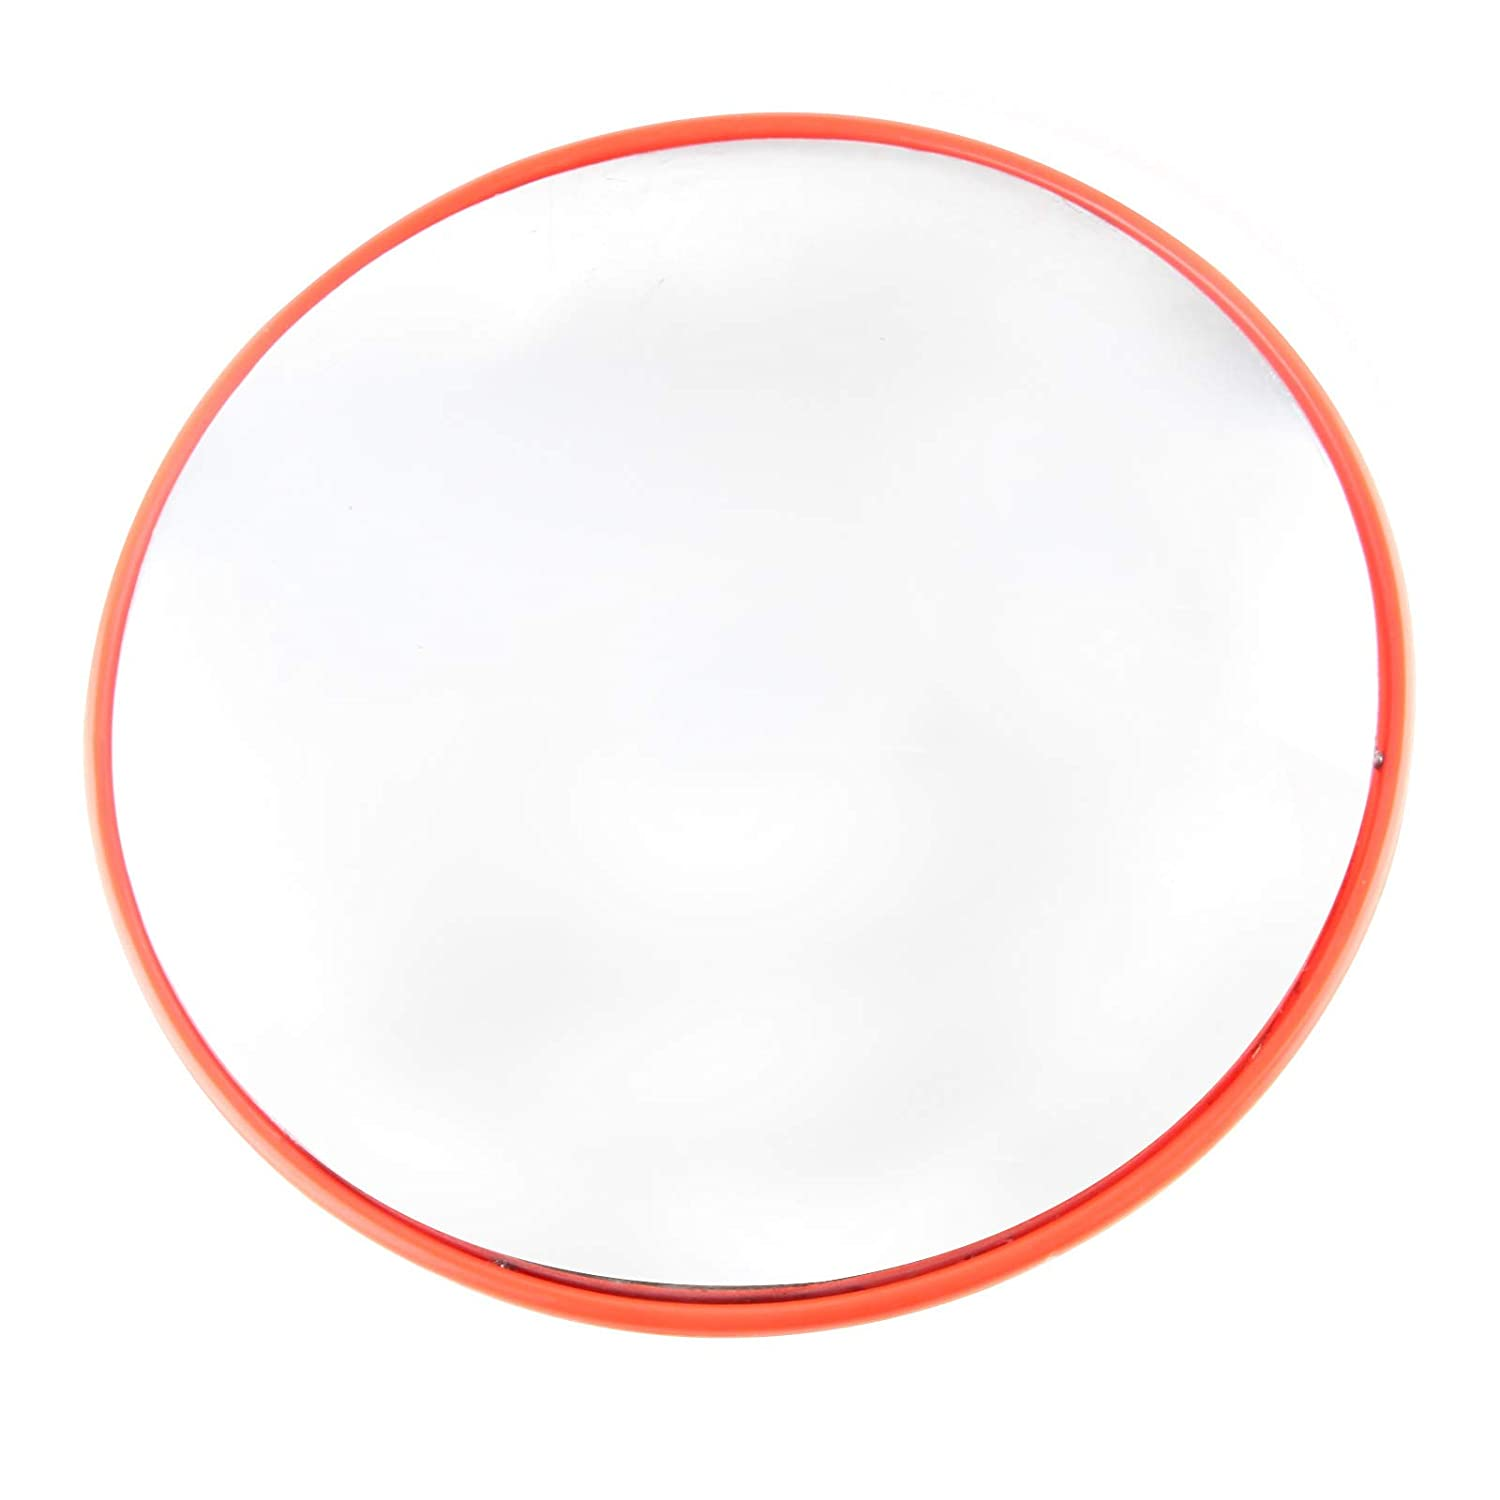 Quieting Wide Angle Security Curved Convex Road Mirror For Driveway Blind Spot Road 30cm Orange